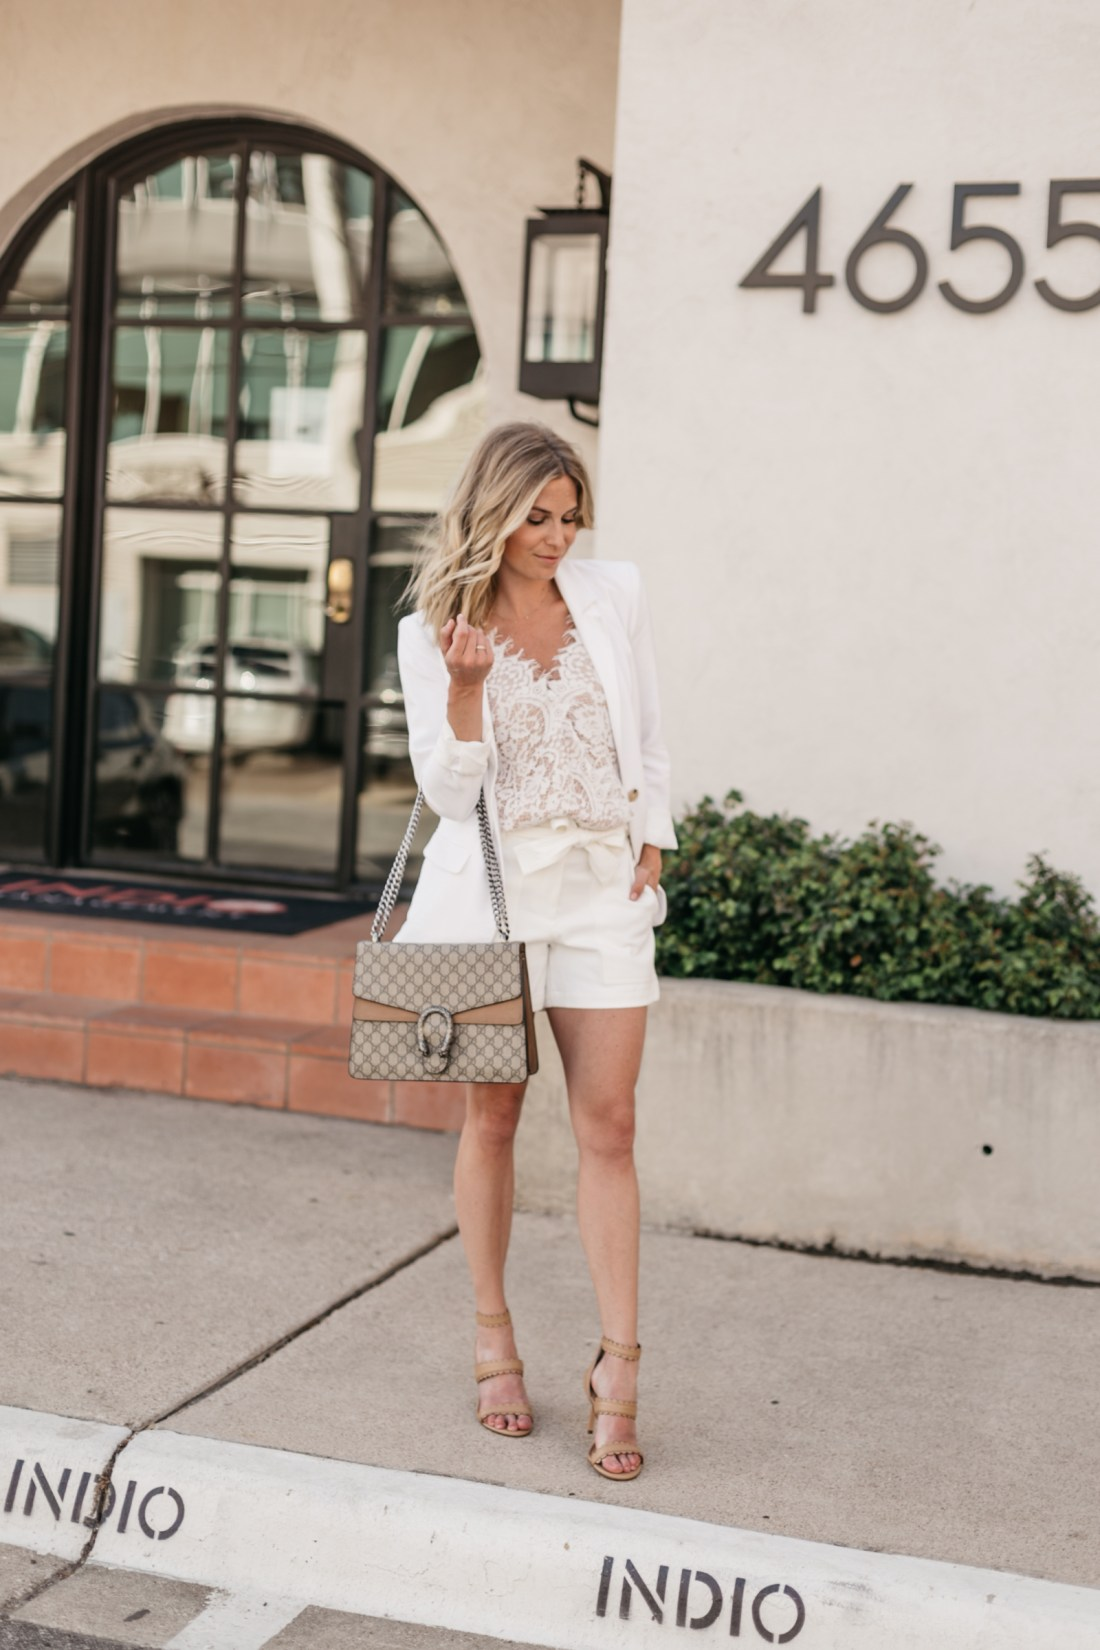 BODYSUITS FOR SUMMER - A white preppy outfit